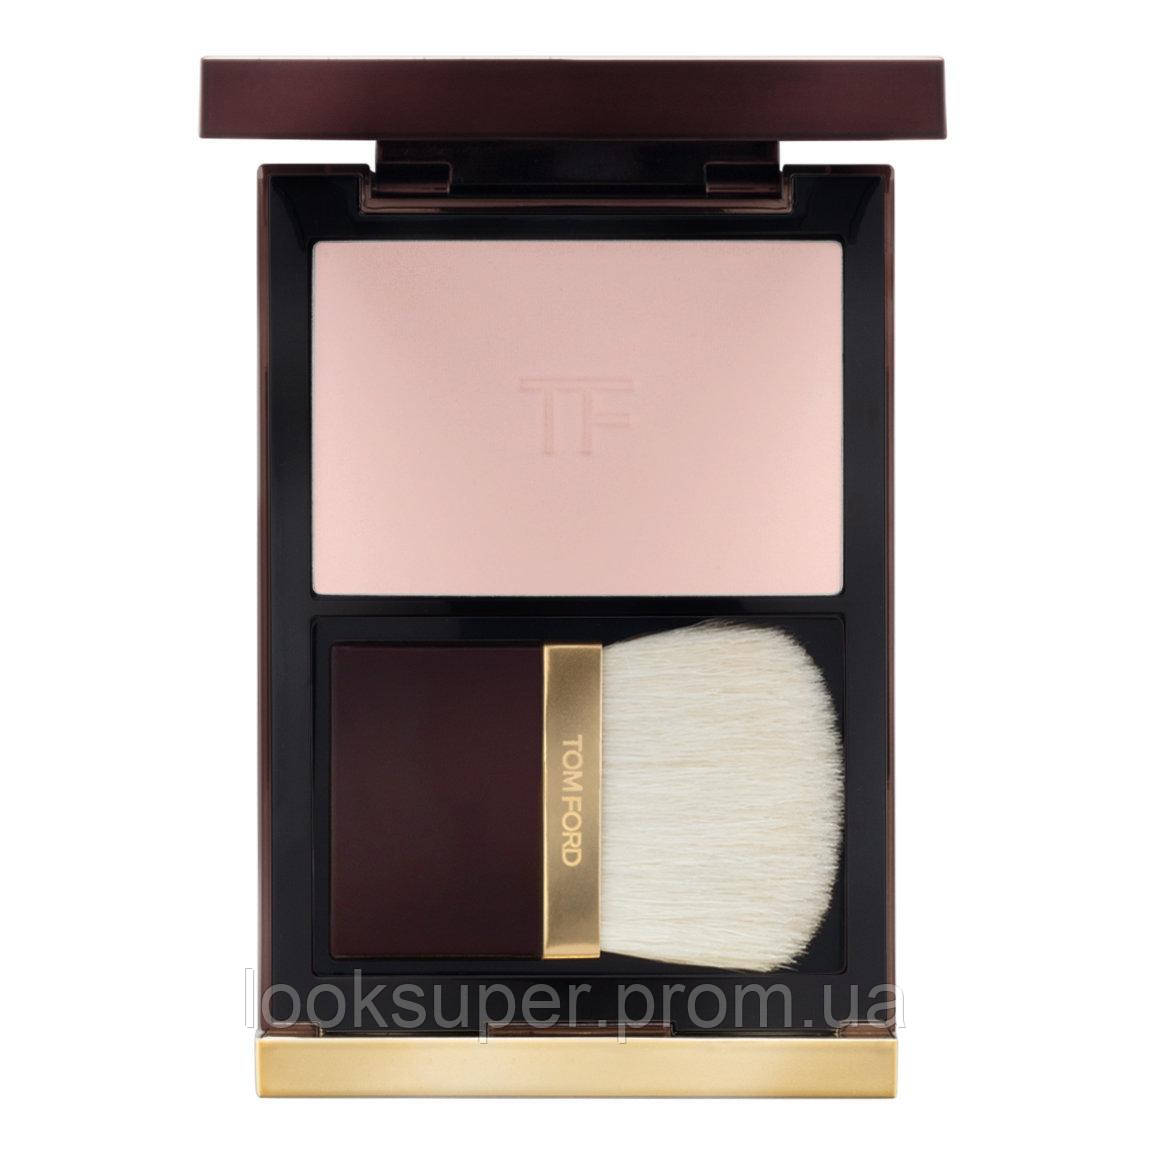 Пудра TOM FORD  ILLUMINATING POWDER  TRANSLUCENT PINK